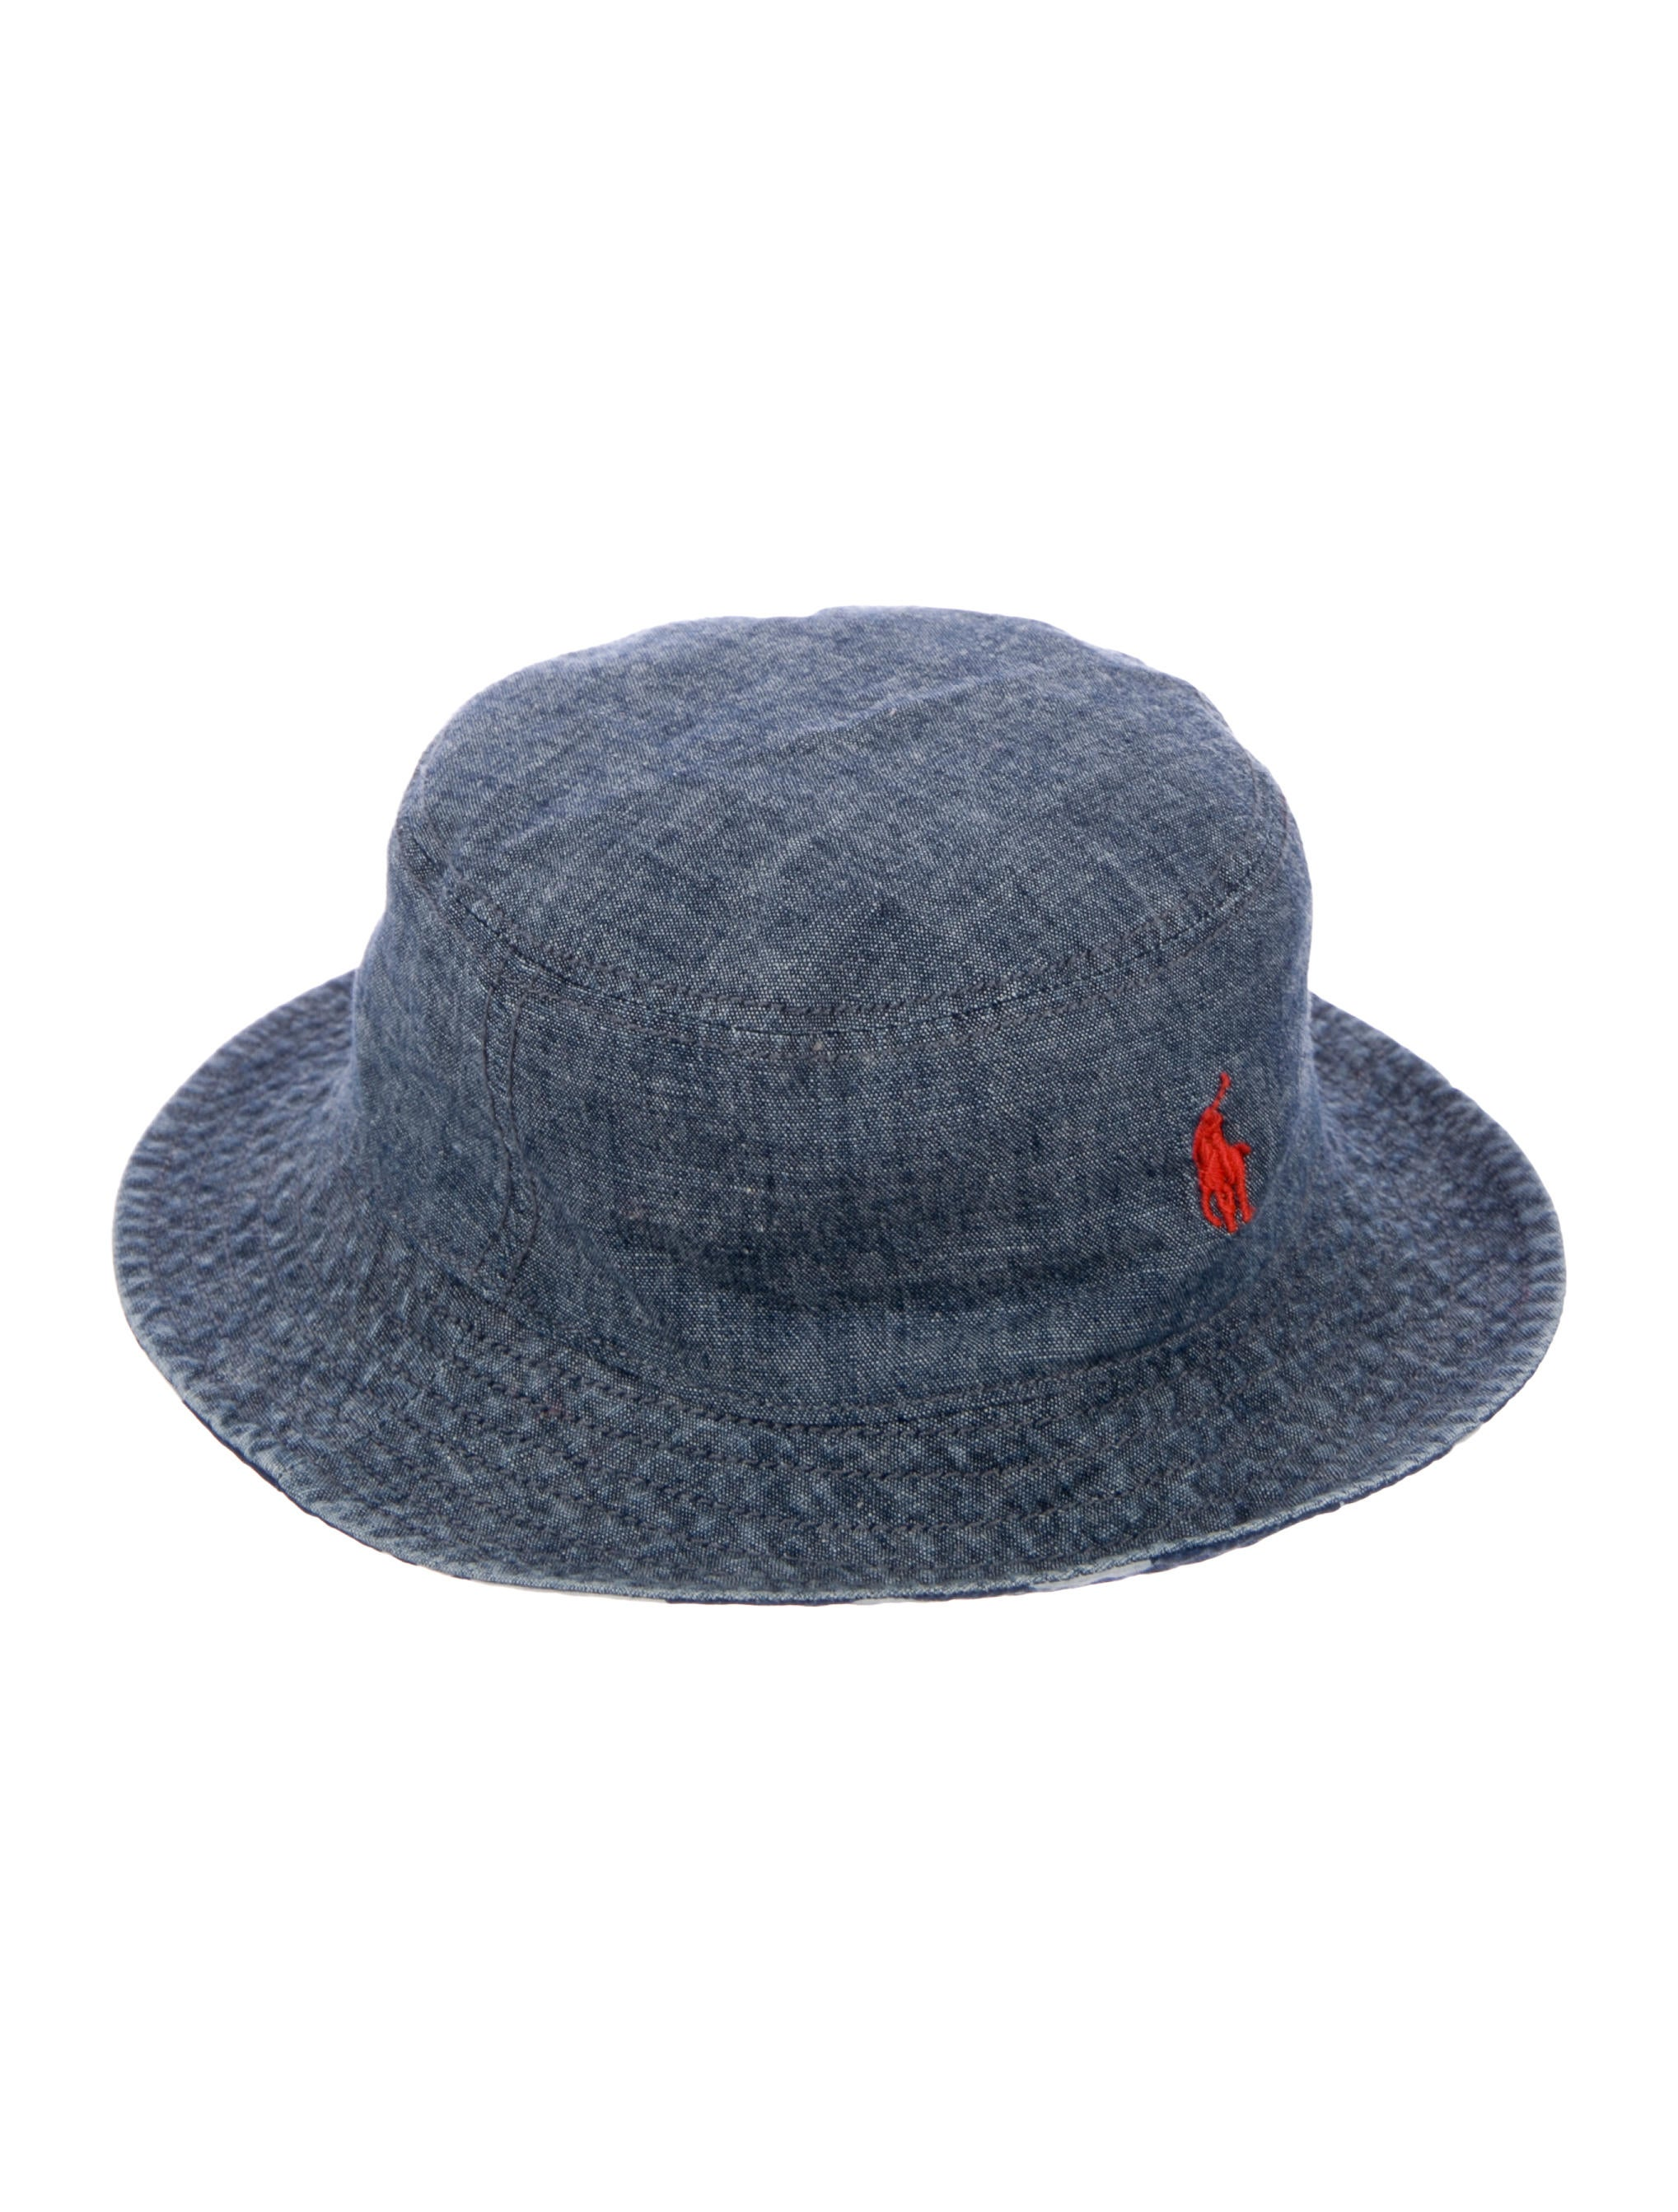 Polo Ralph Lauren Boys  Chambray Bucket Hat w  Tags - Boys ... 270a11d730d